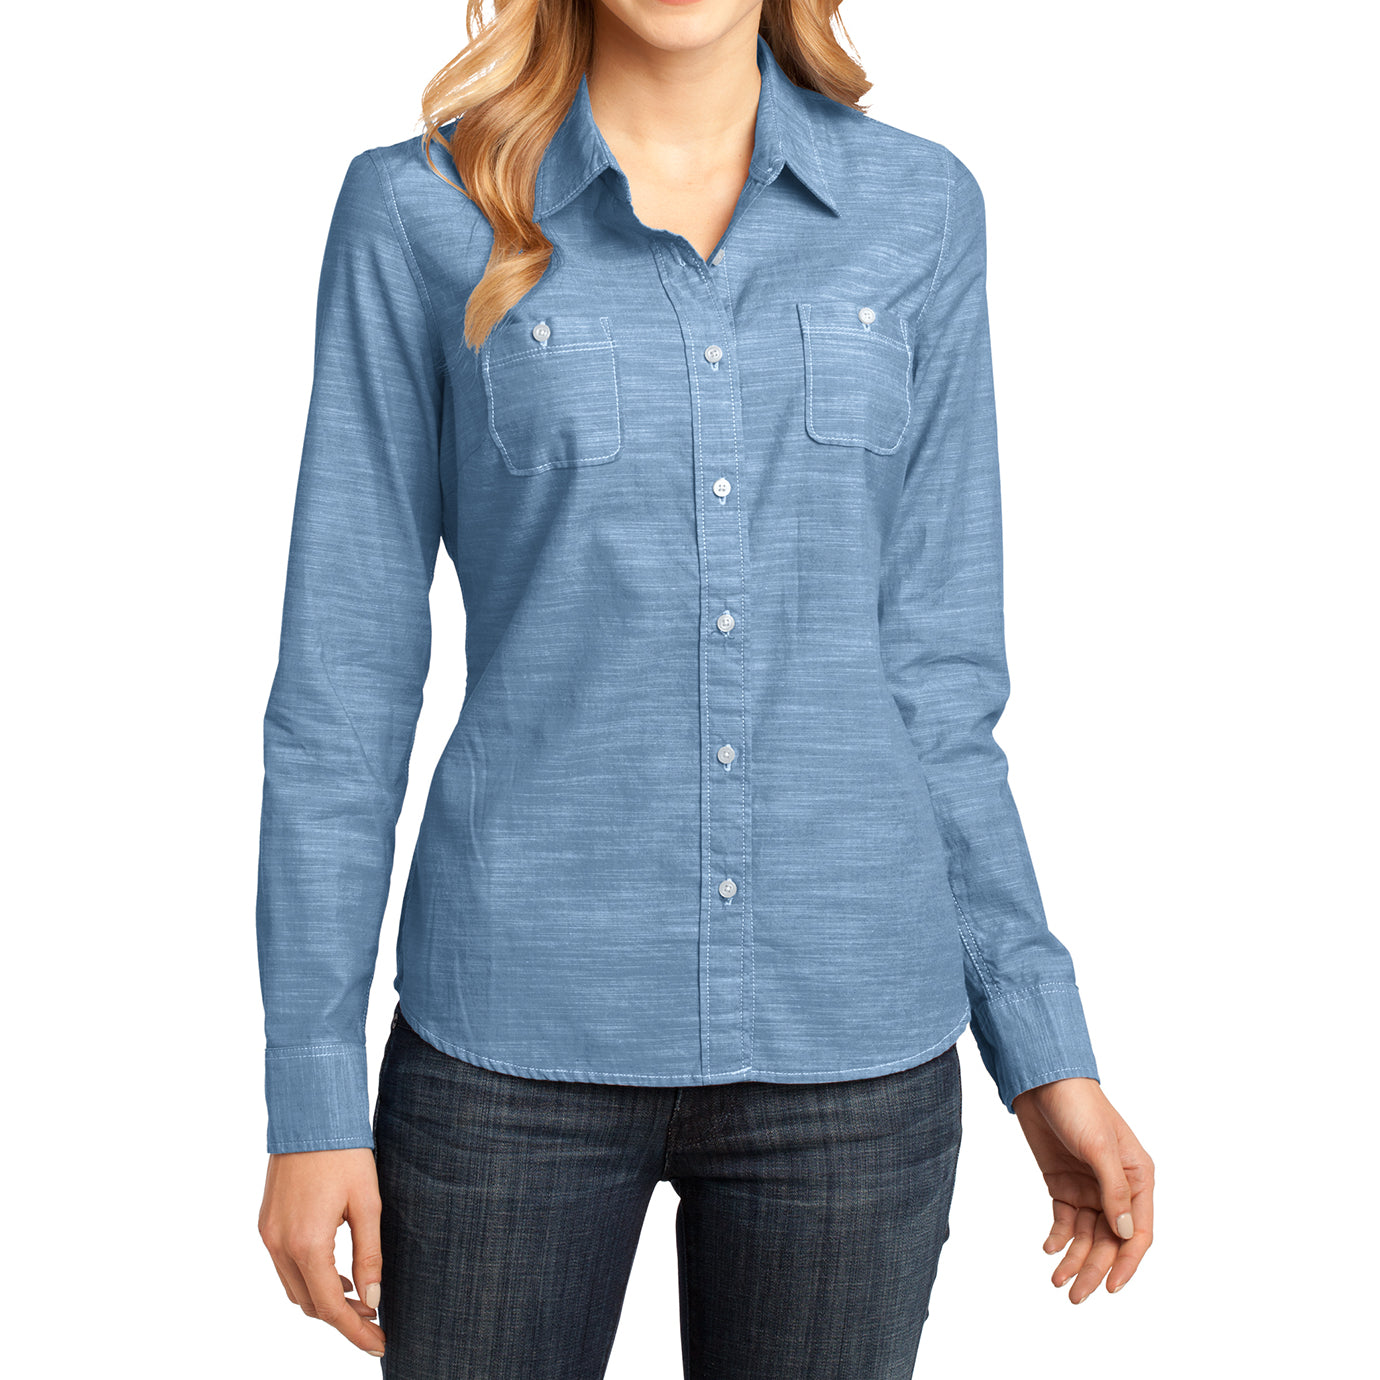 Womens Long Sleeve Washed Woven Shirt - Light Blue - Front